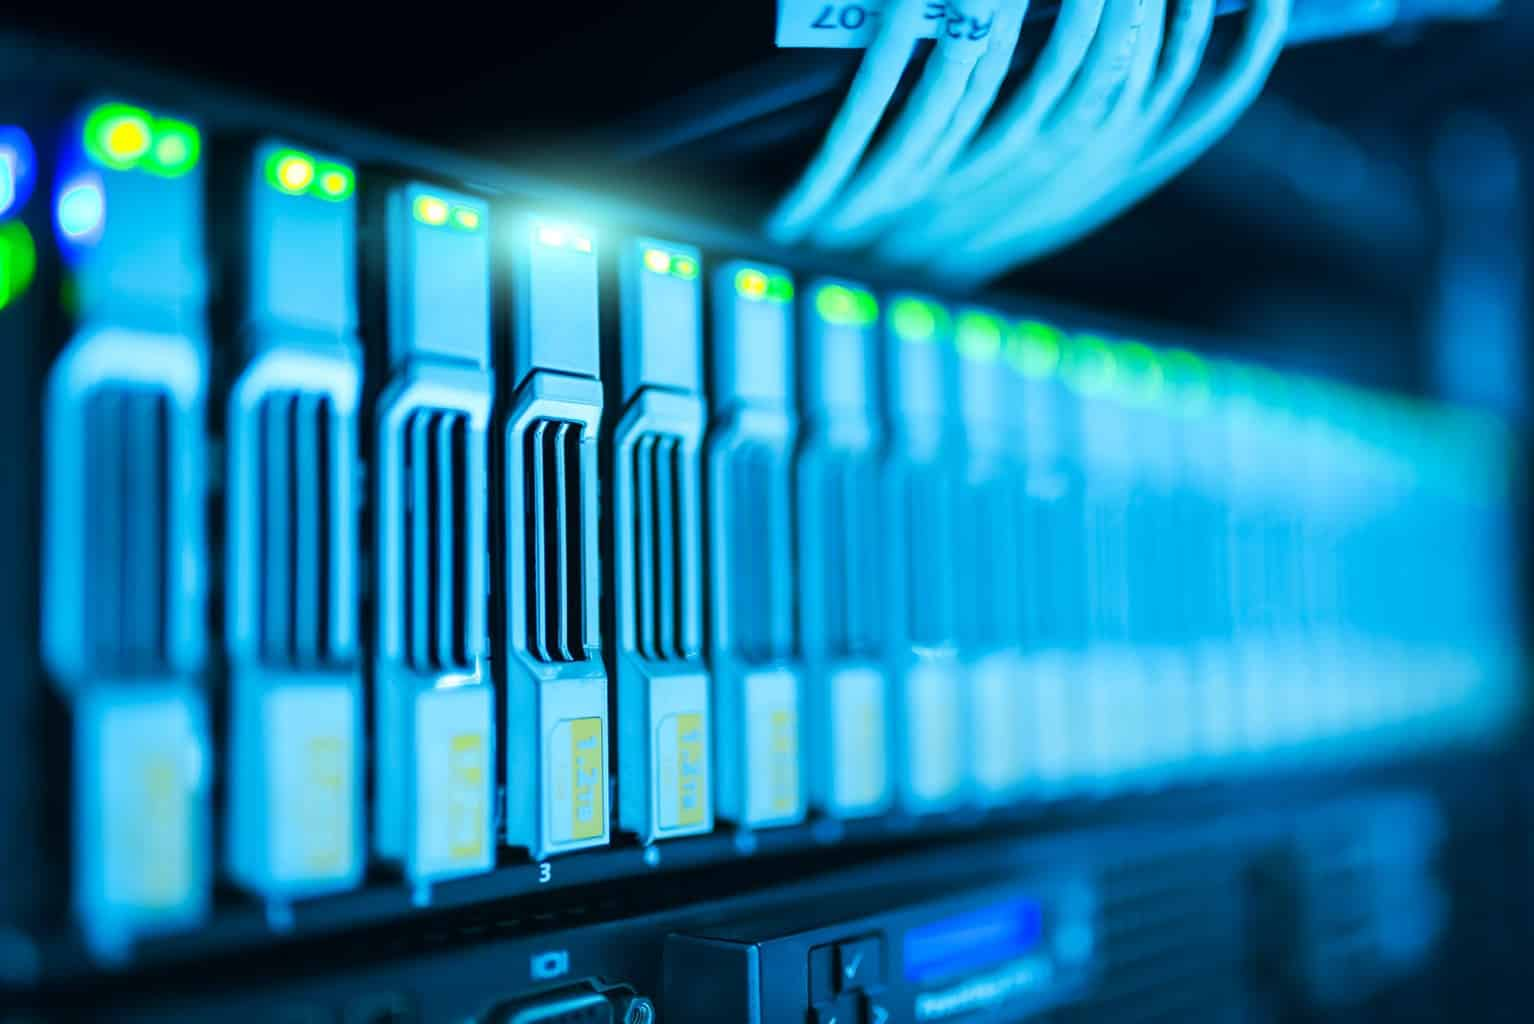 Differences between a Standard Database and Data Warehouse